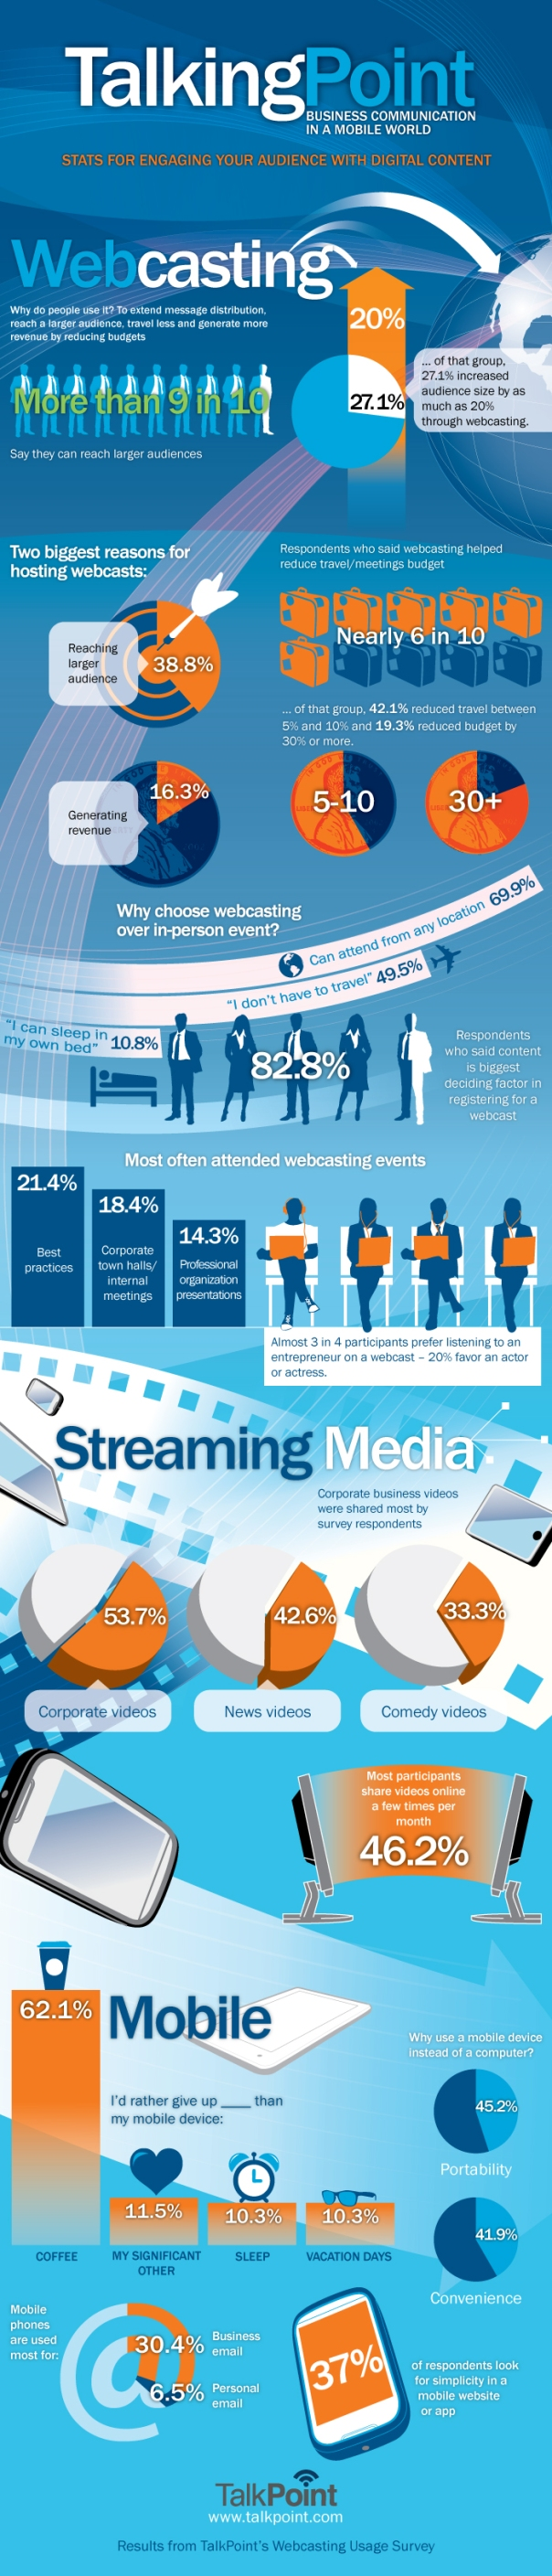 talkpoint_infographic